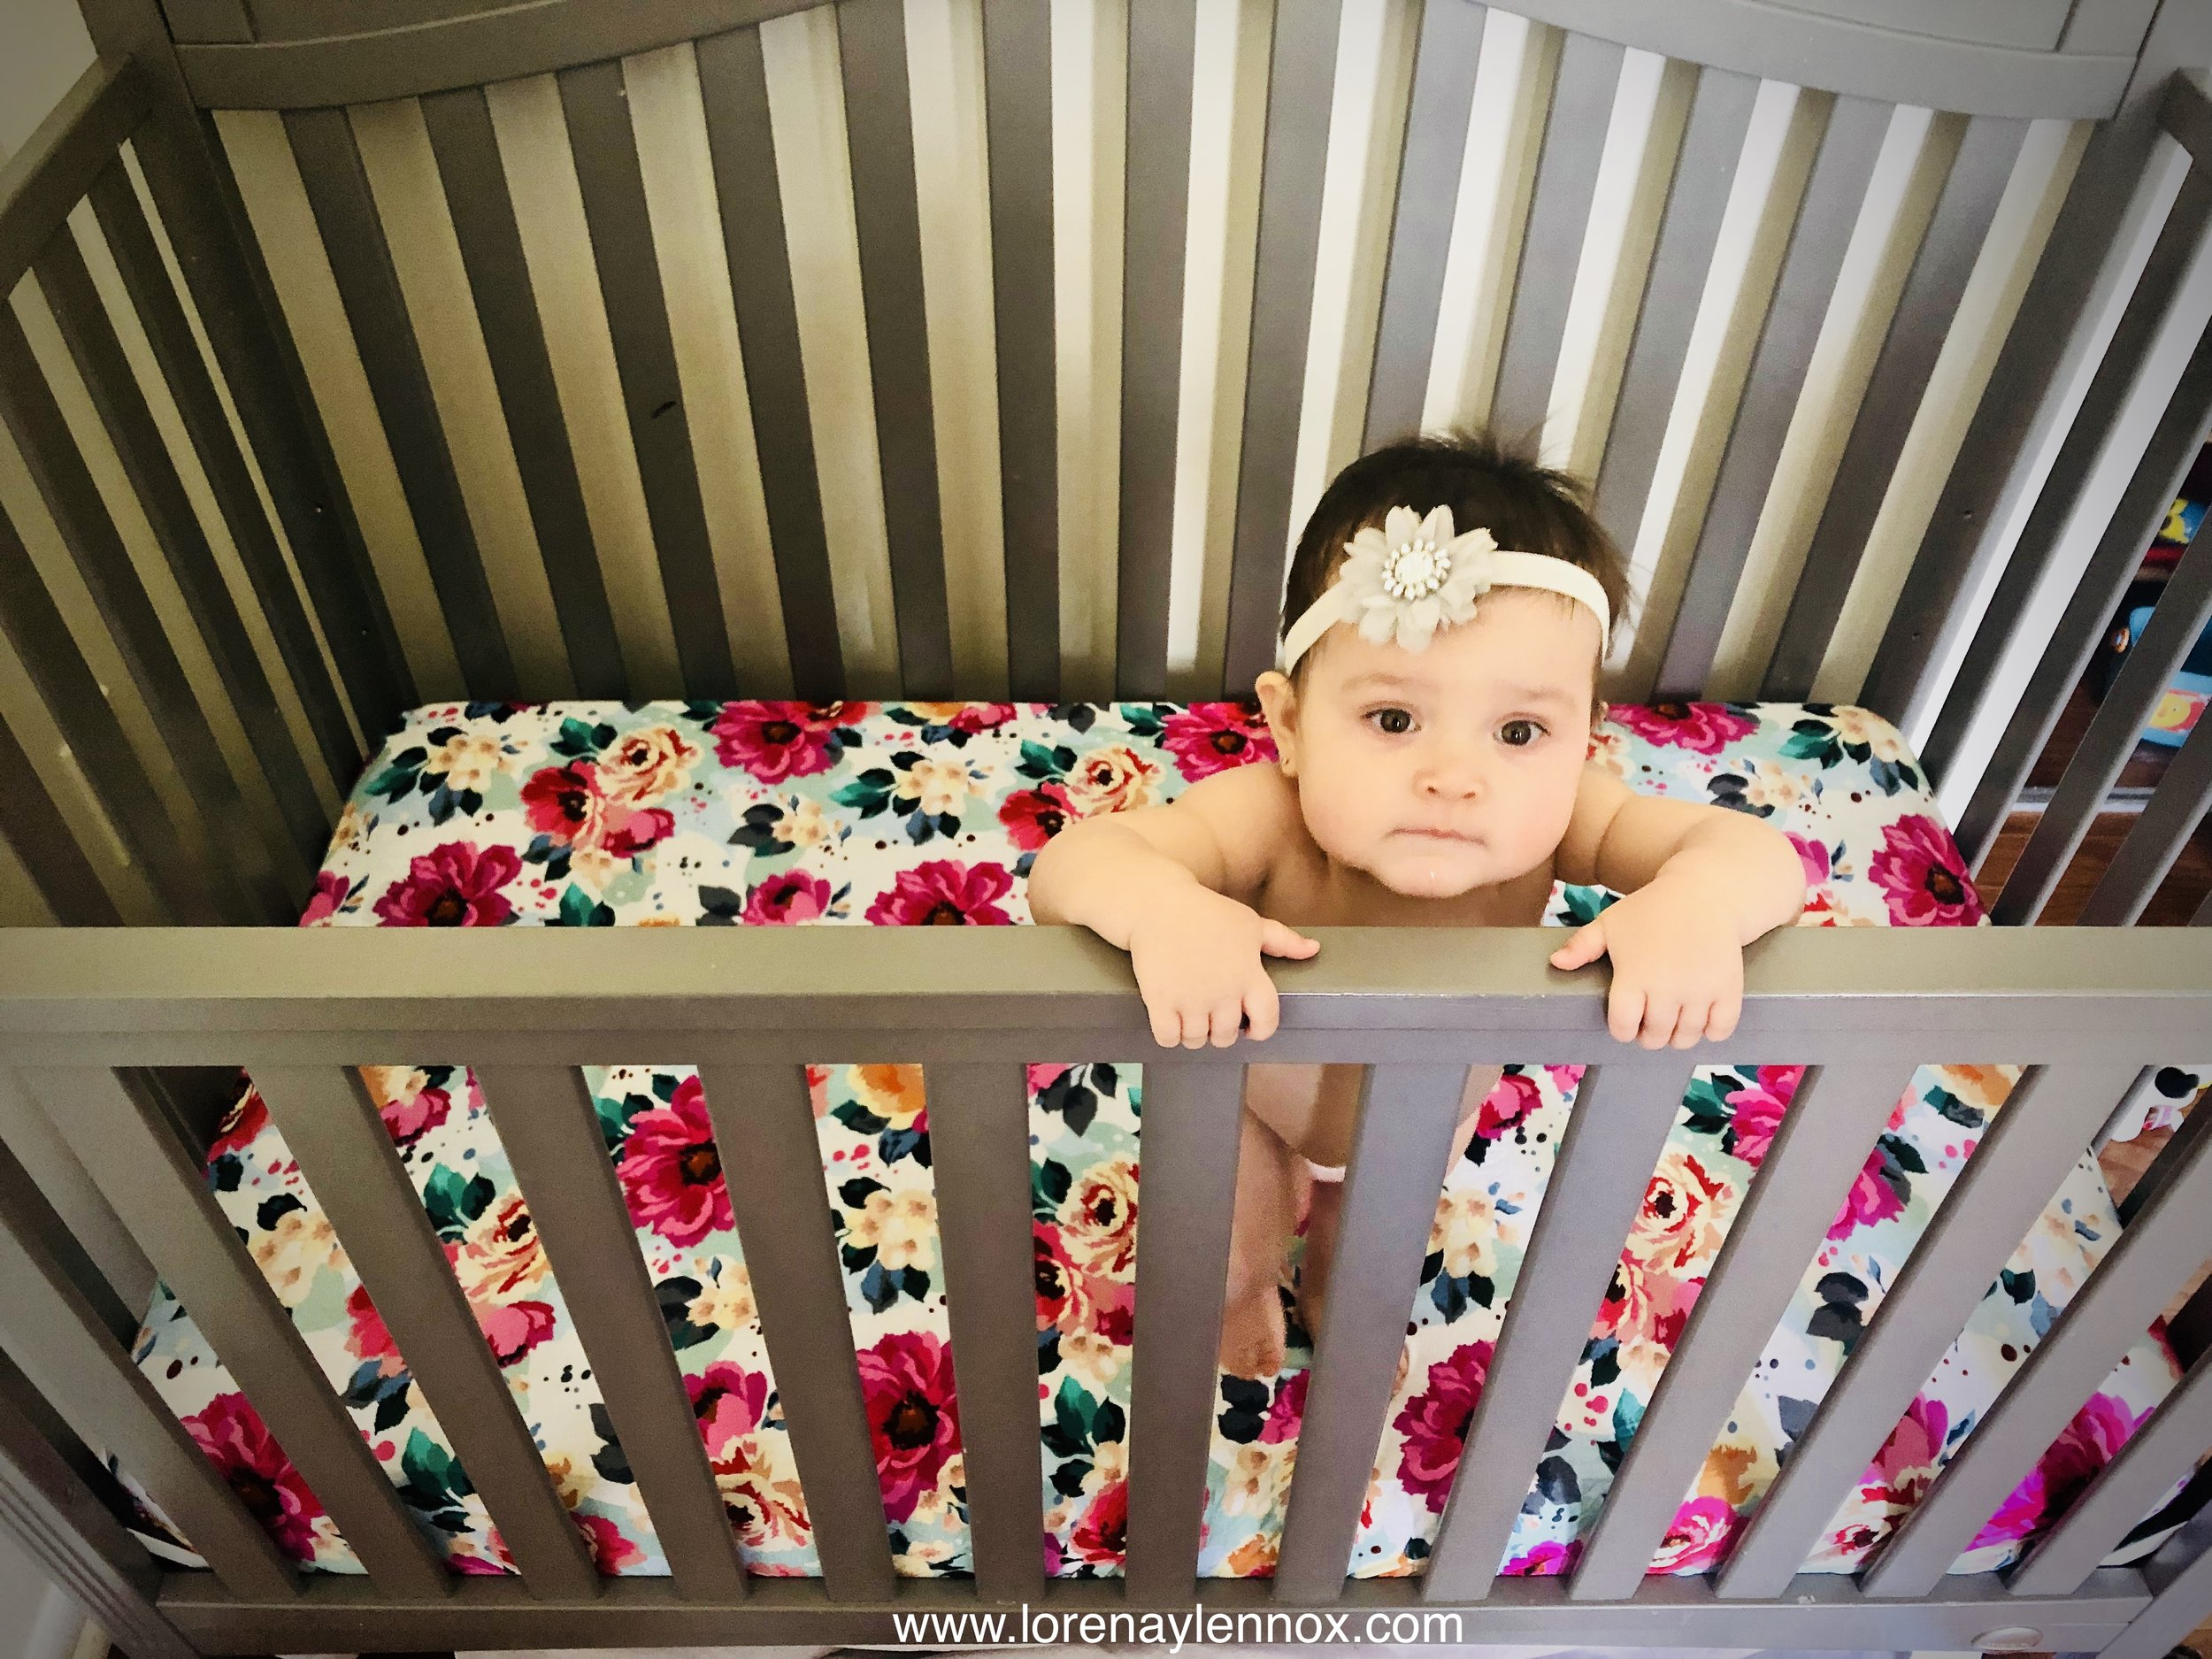 Fuchsia Wild Flower Crib Sheets. The softest cribs sheets ever.